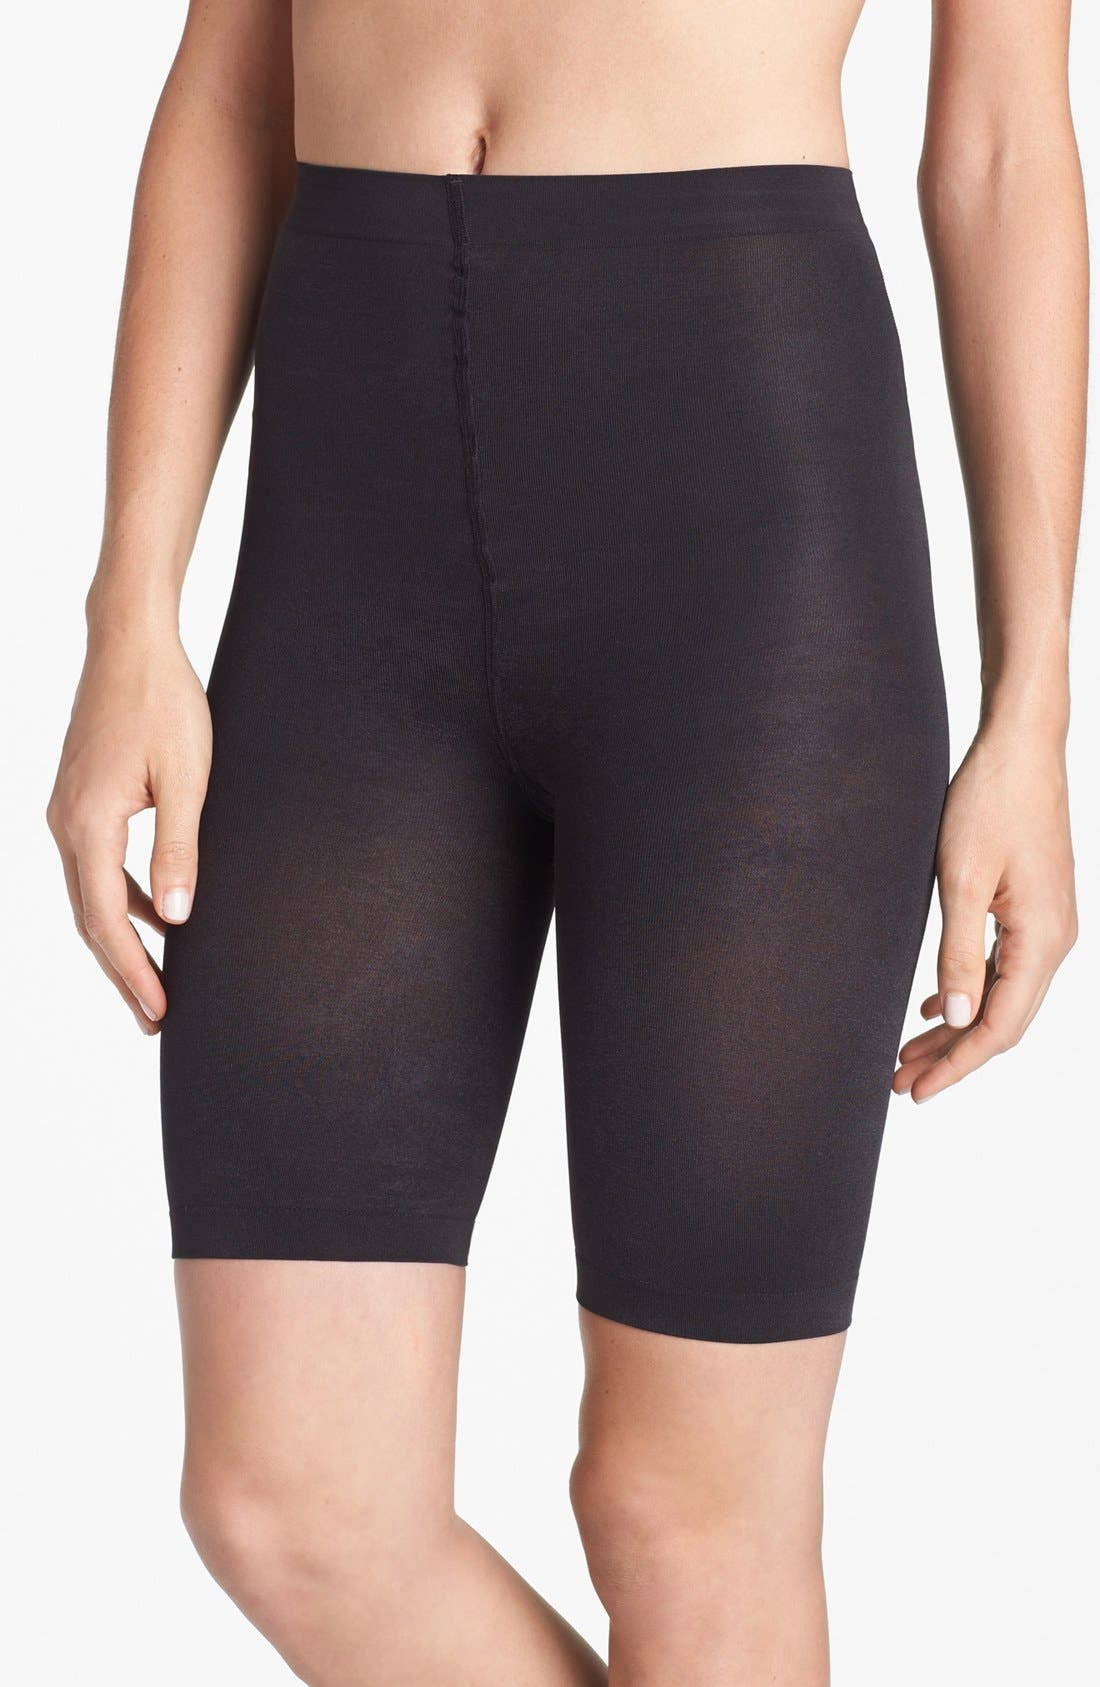 Alternate Image 1 Selected - Donna Karan 'The Body Perfect' Mid Thigh Shaper